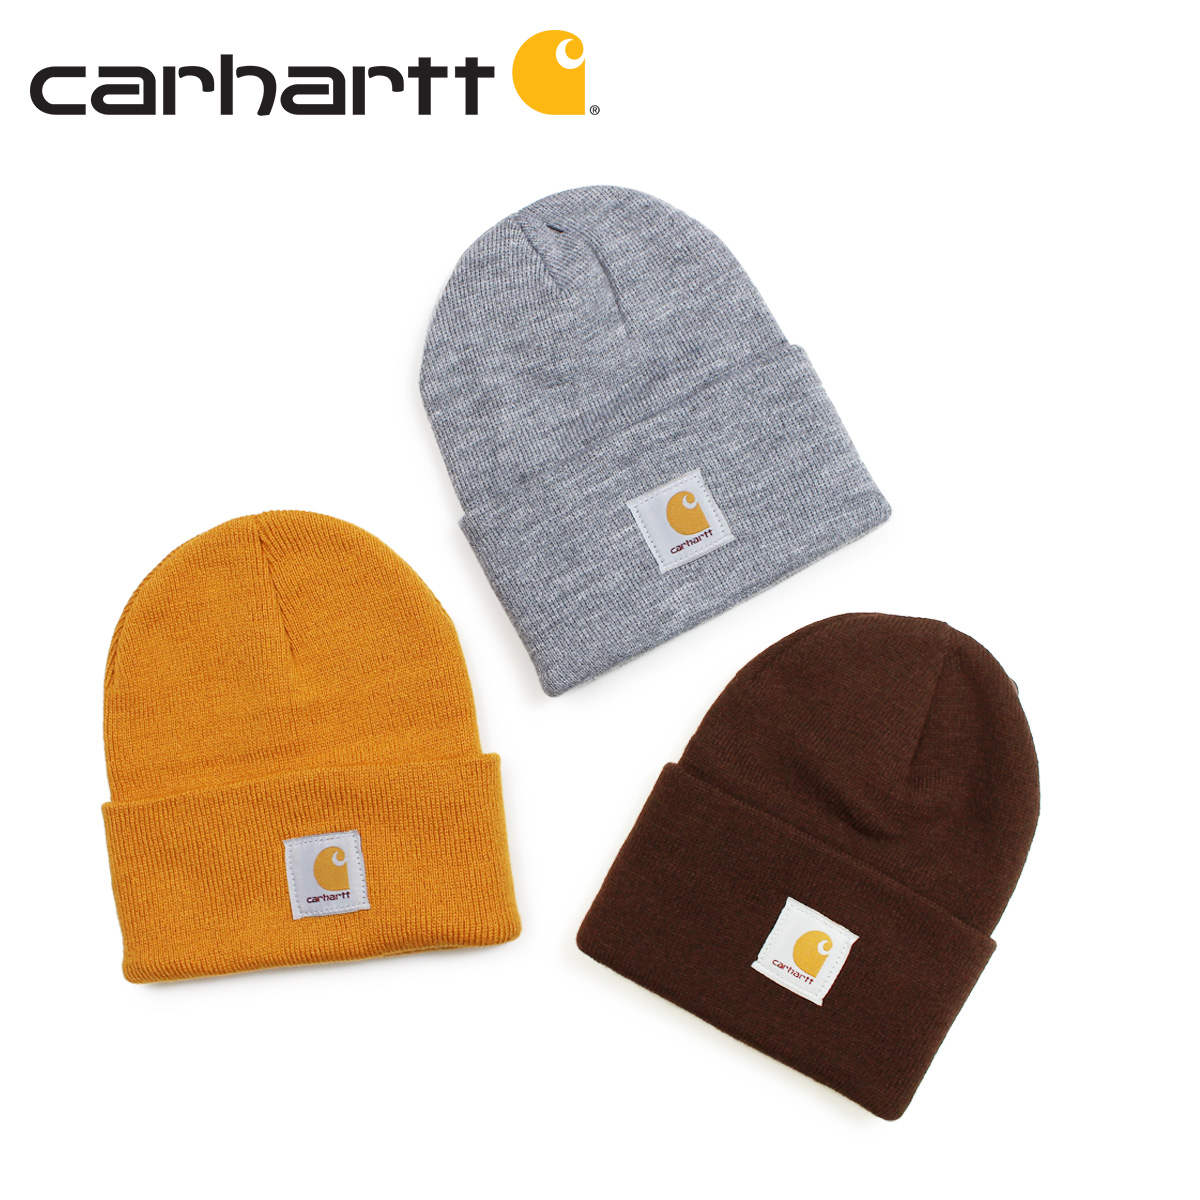 242e25b94 carhartt car heart knit hat knit cap beanie men gap Dis ACRYLIC WATCH HAT  gray dark brown gold A18